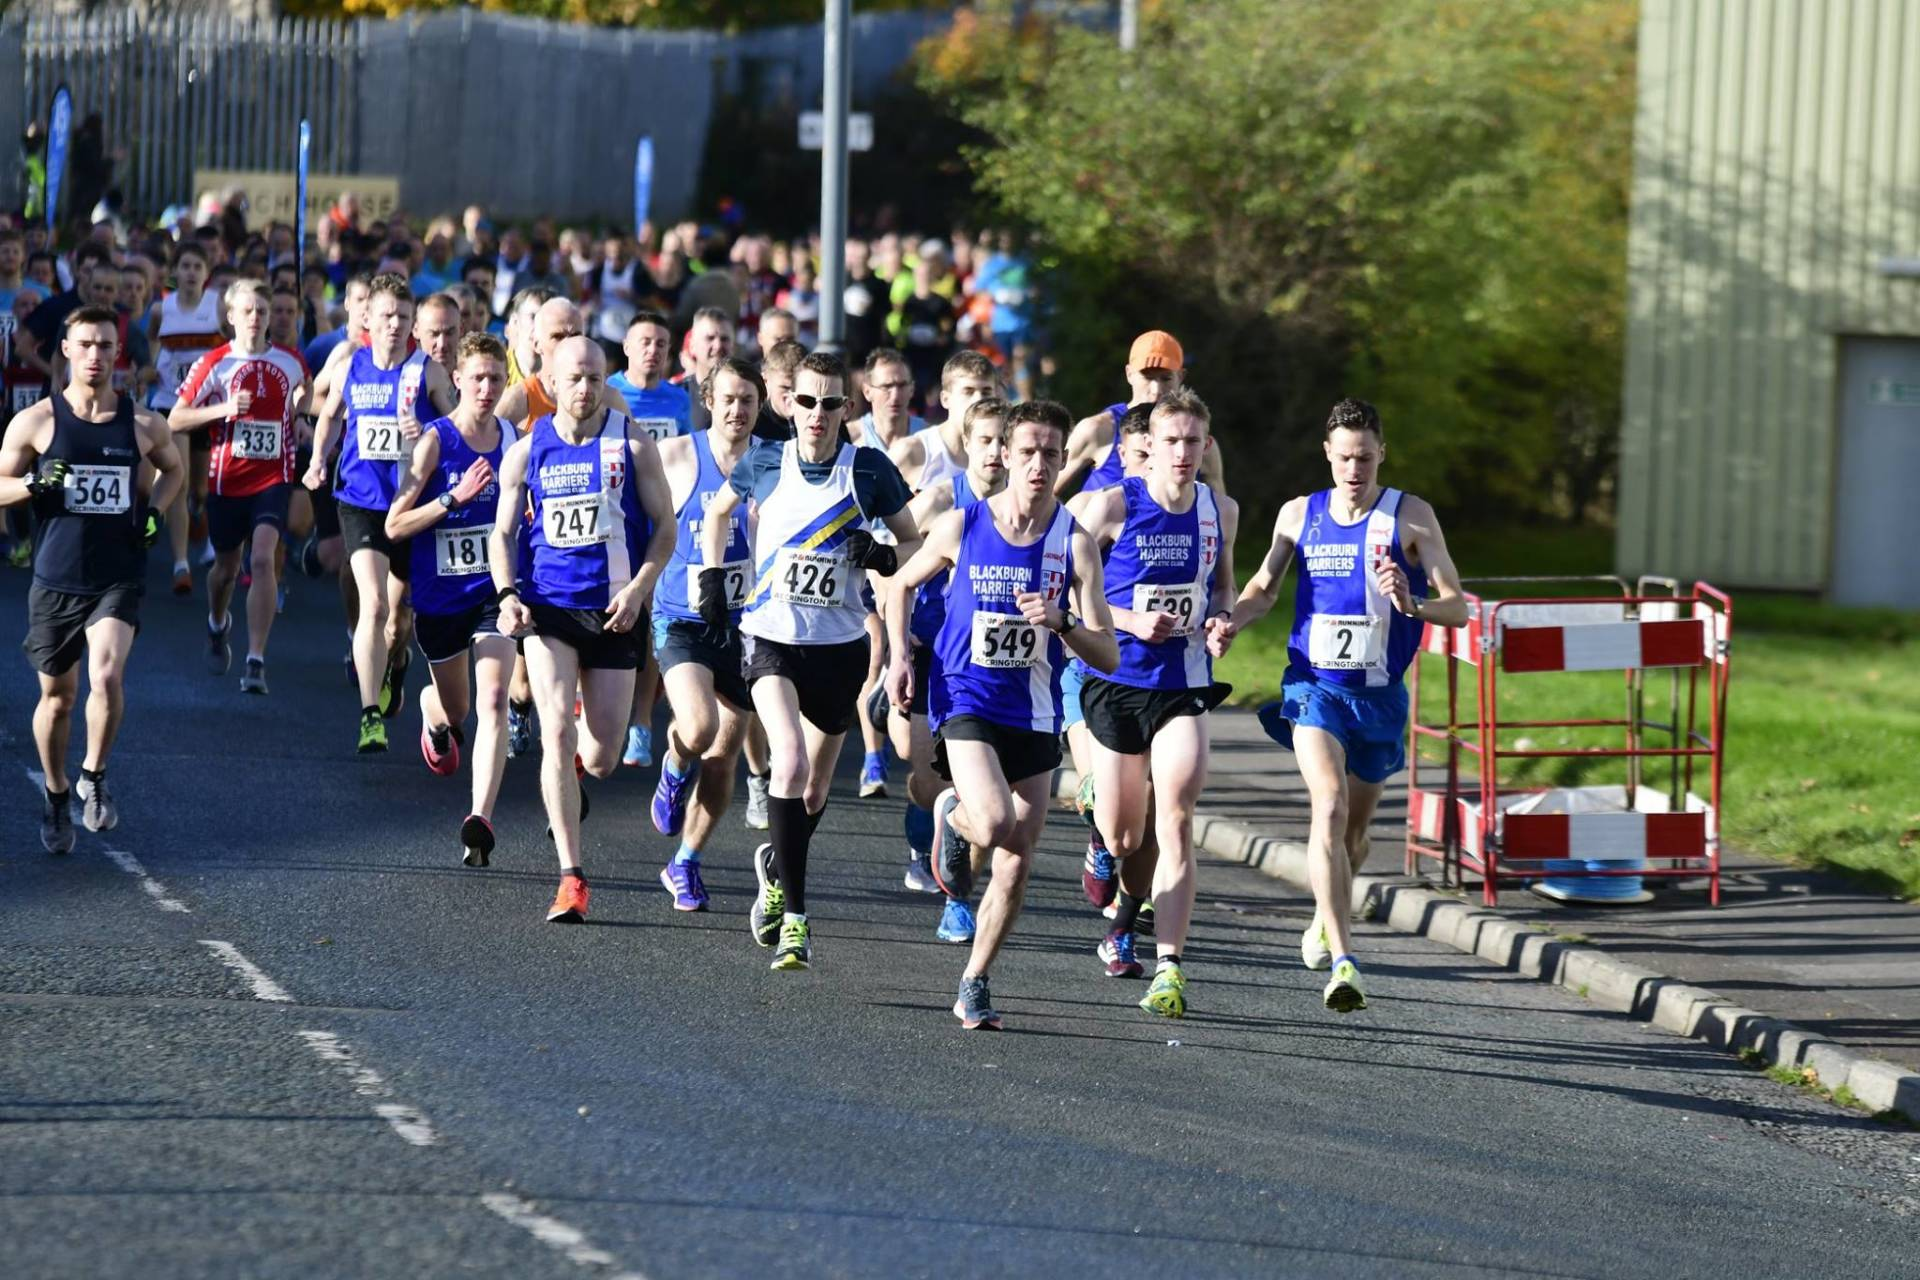 Clean Sweep for the Harriers at Accrington 10k – Great return to competition by Samantha